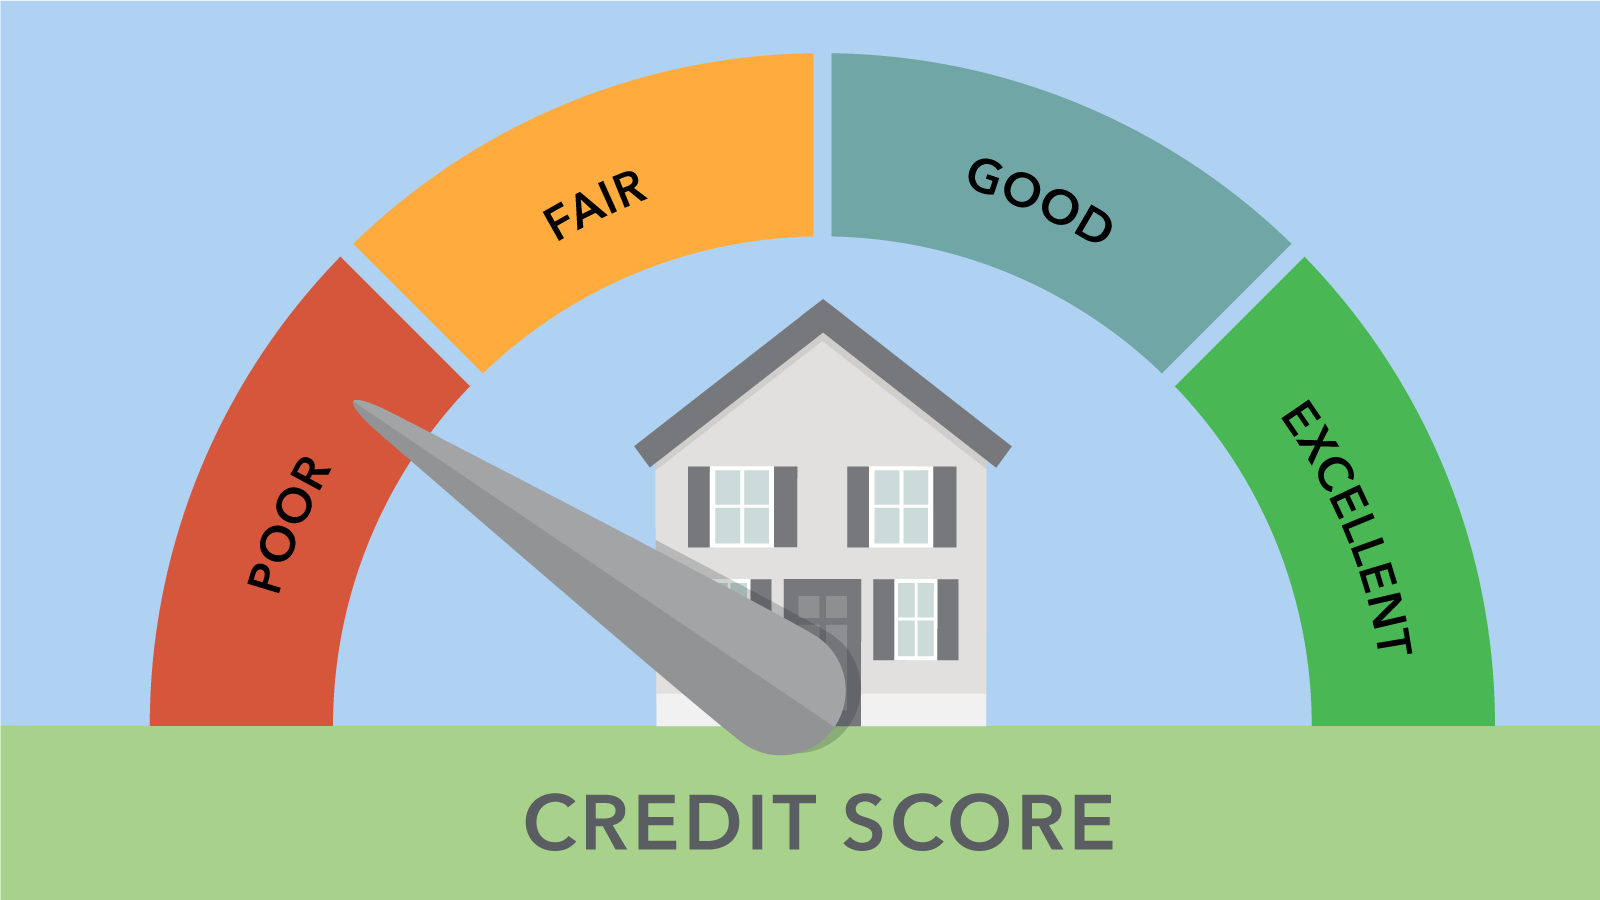 Credit Score Check Header Image